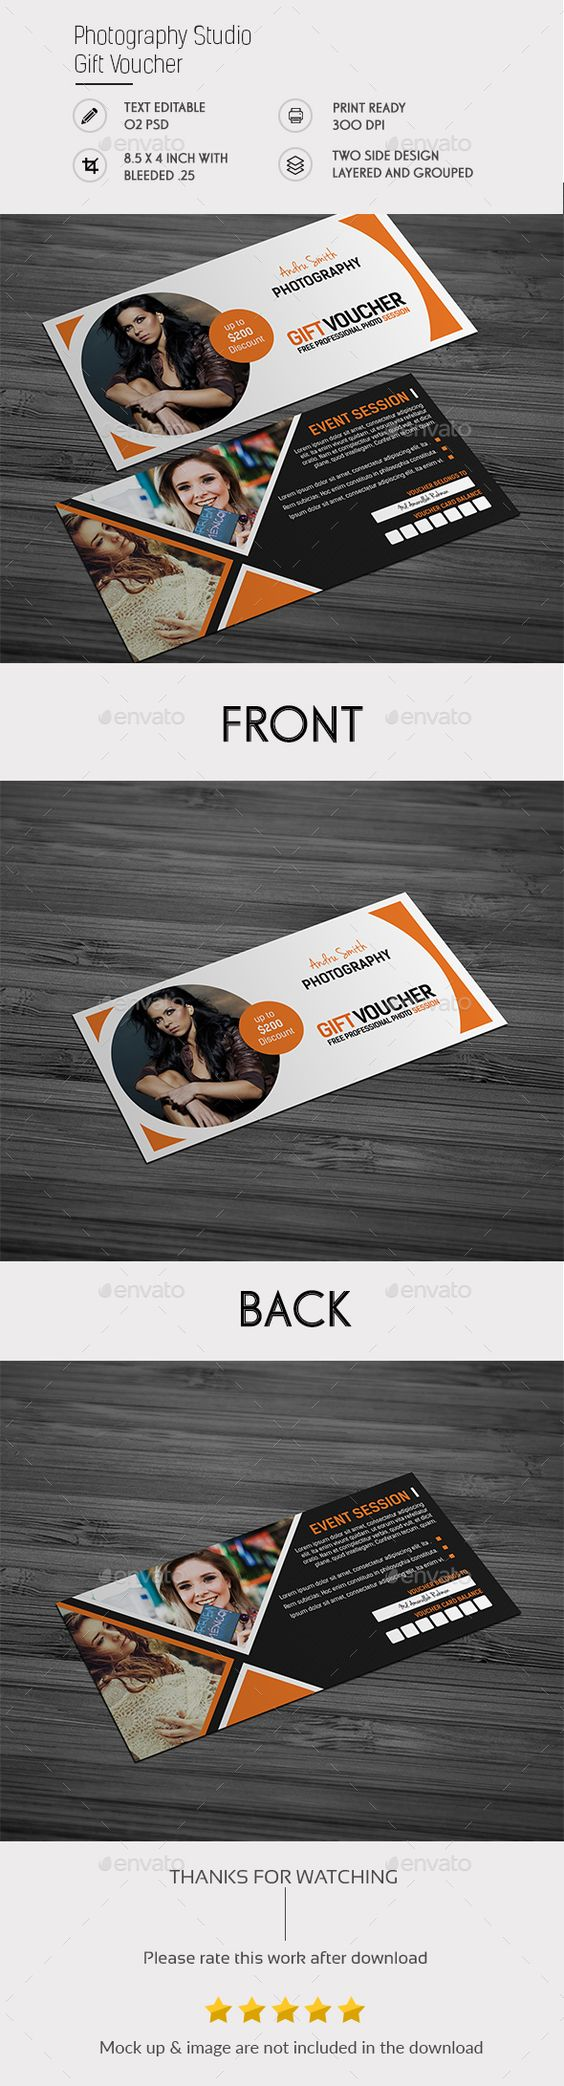 Photography Studio Gift Voucher Template PSD #design Download: http://graphicriver.net/item/photography-studio-gift-voucher/14511390?ref=ksioks